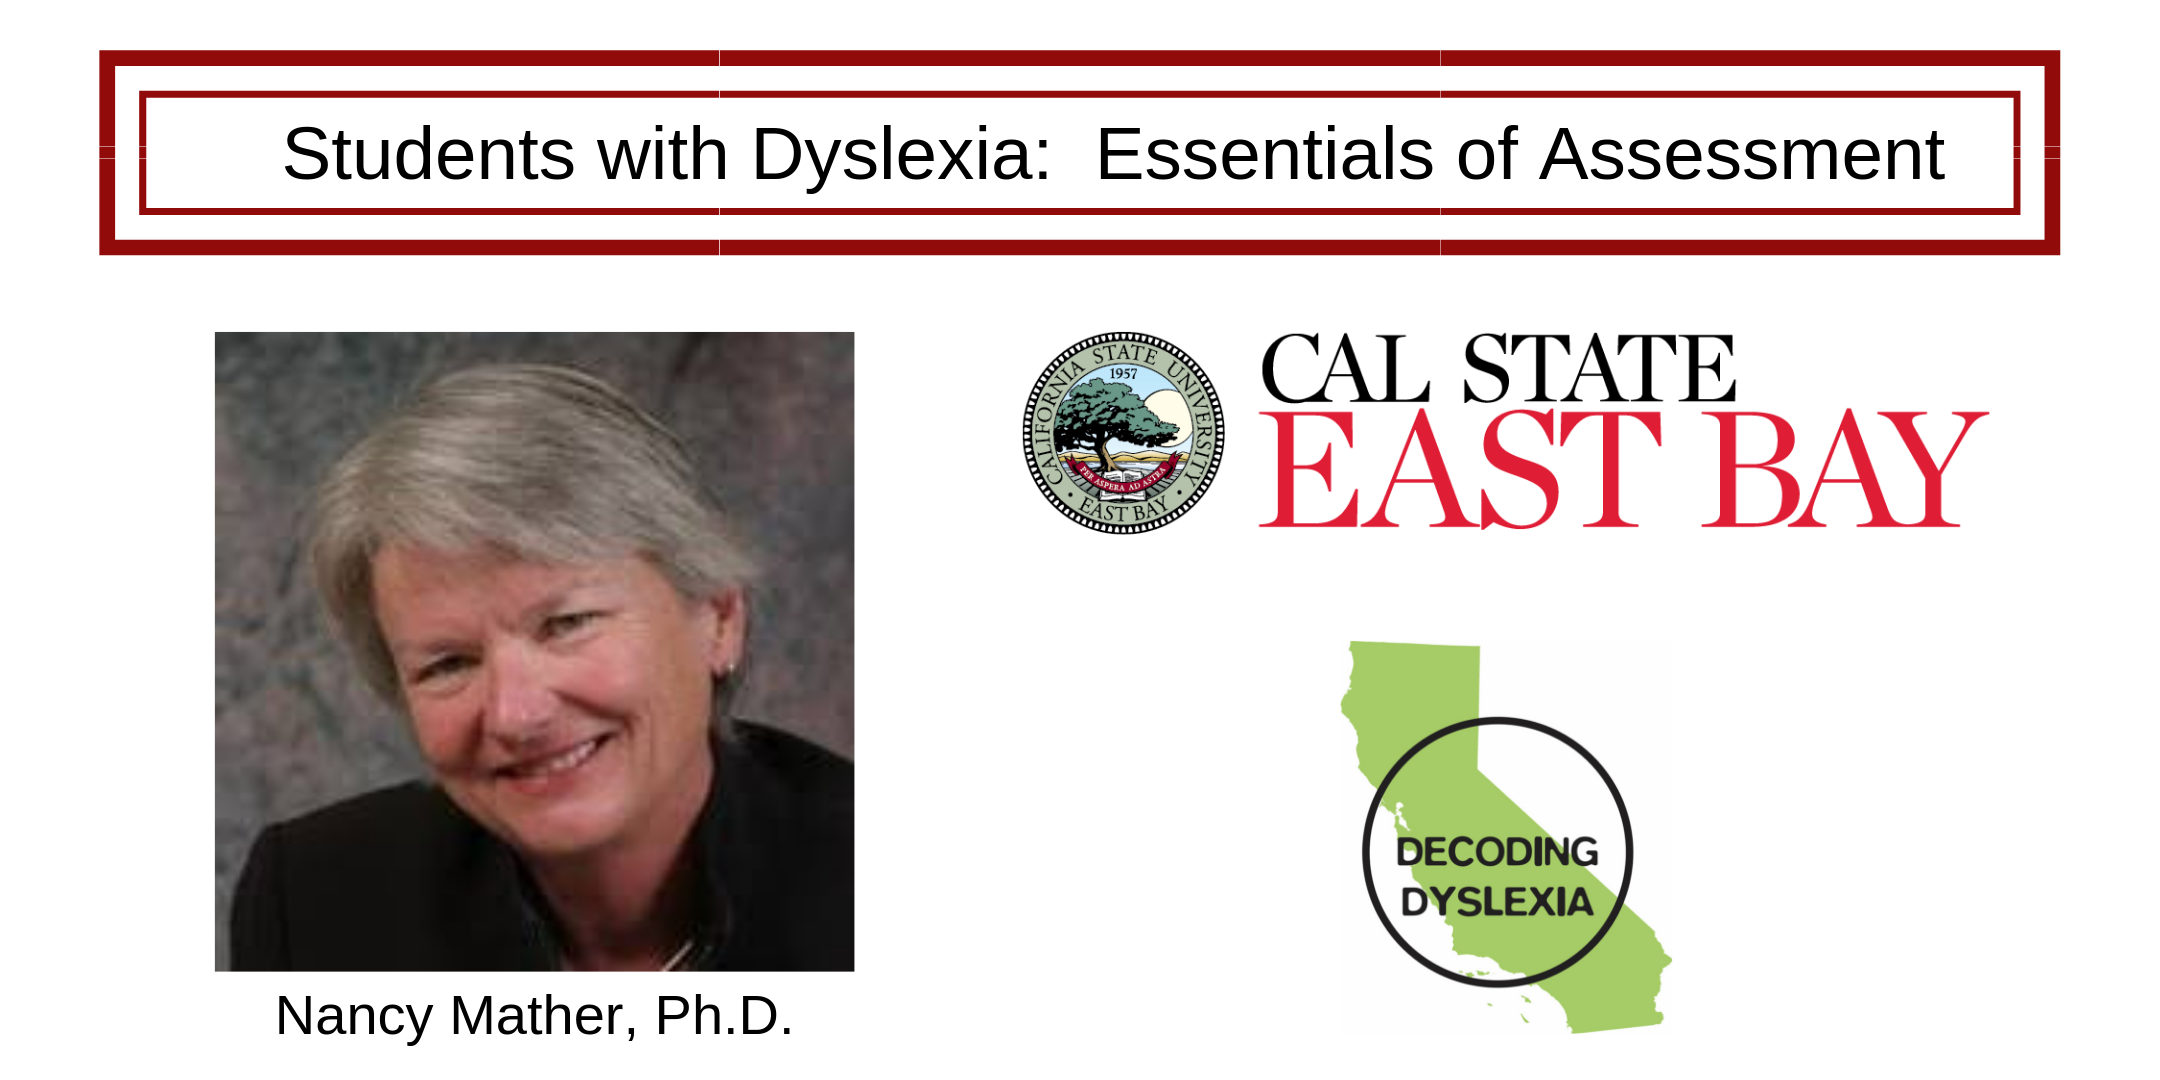 Students with Dyslexia: Essentials of Assessment @ California State University, East Bay - Valley Business and Technology Center - 124